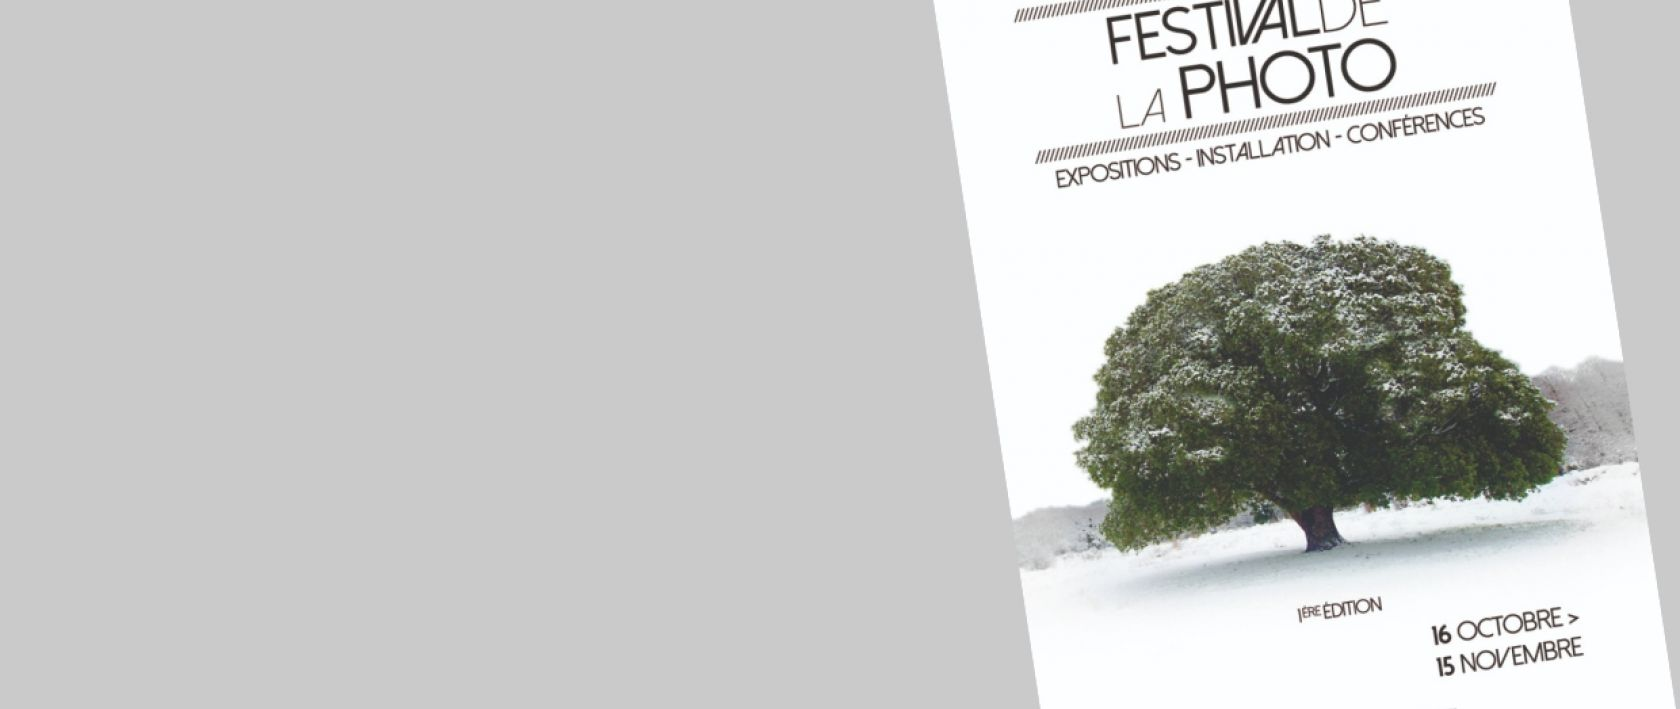 1ère édition - Festival de la photo